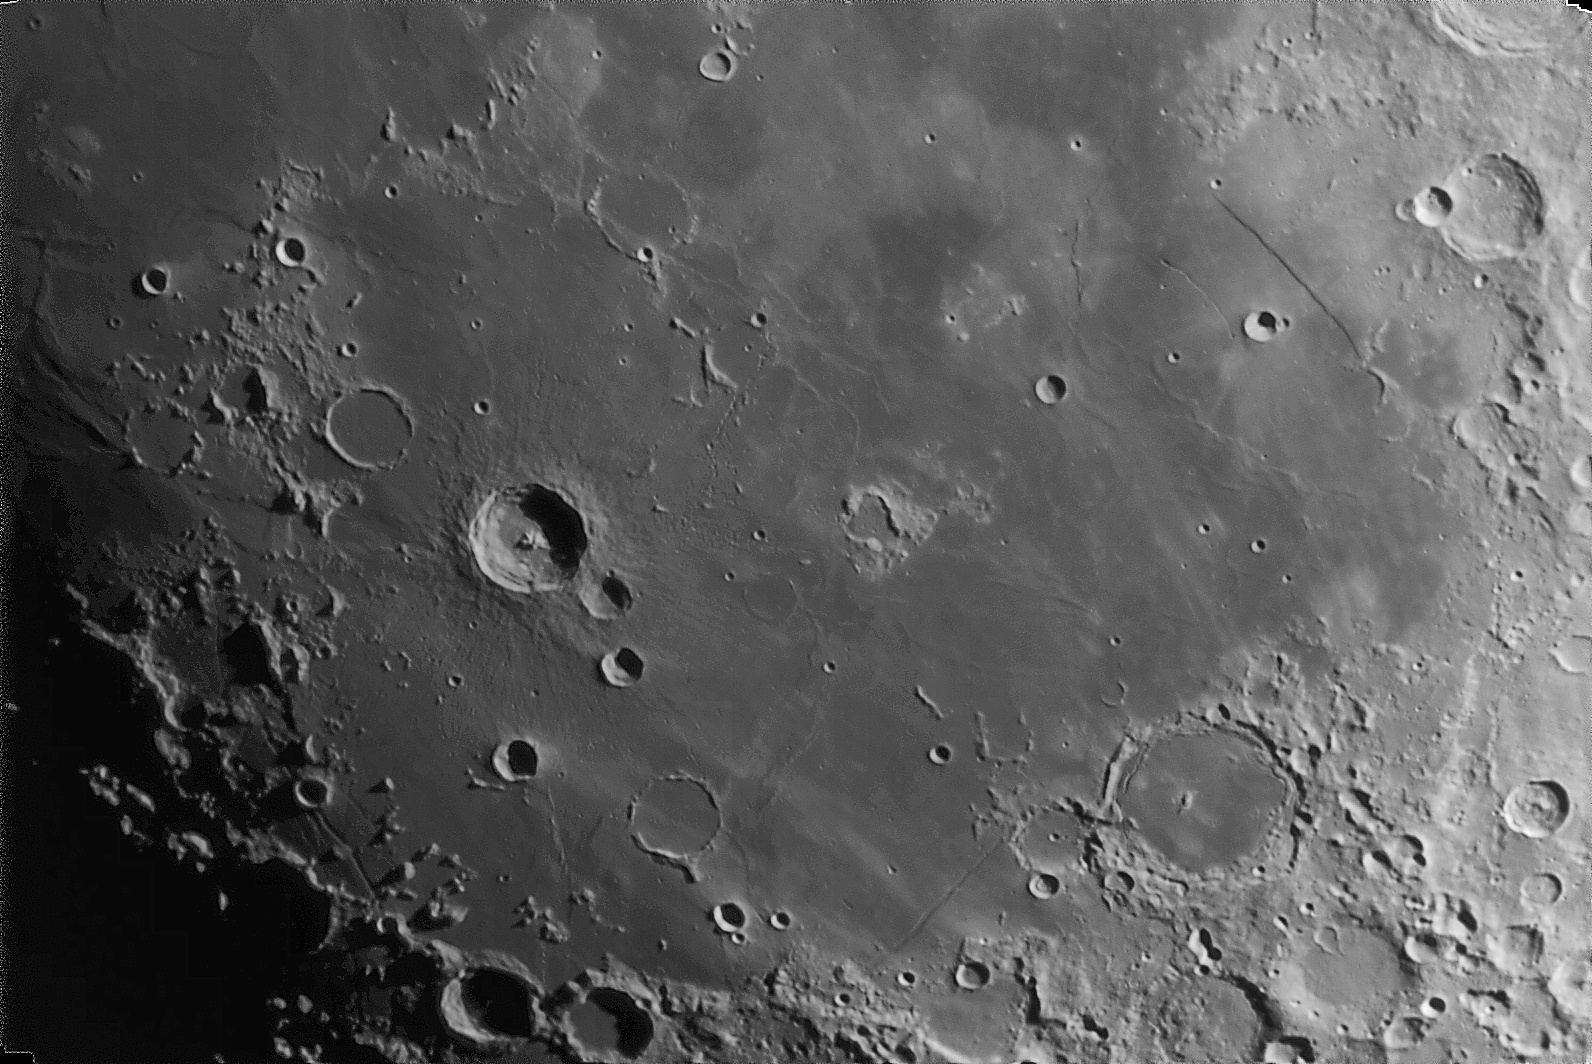 Moon_232811_g3_ap344_conv pop.jpg